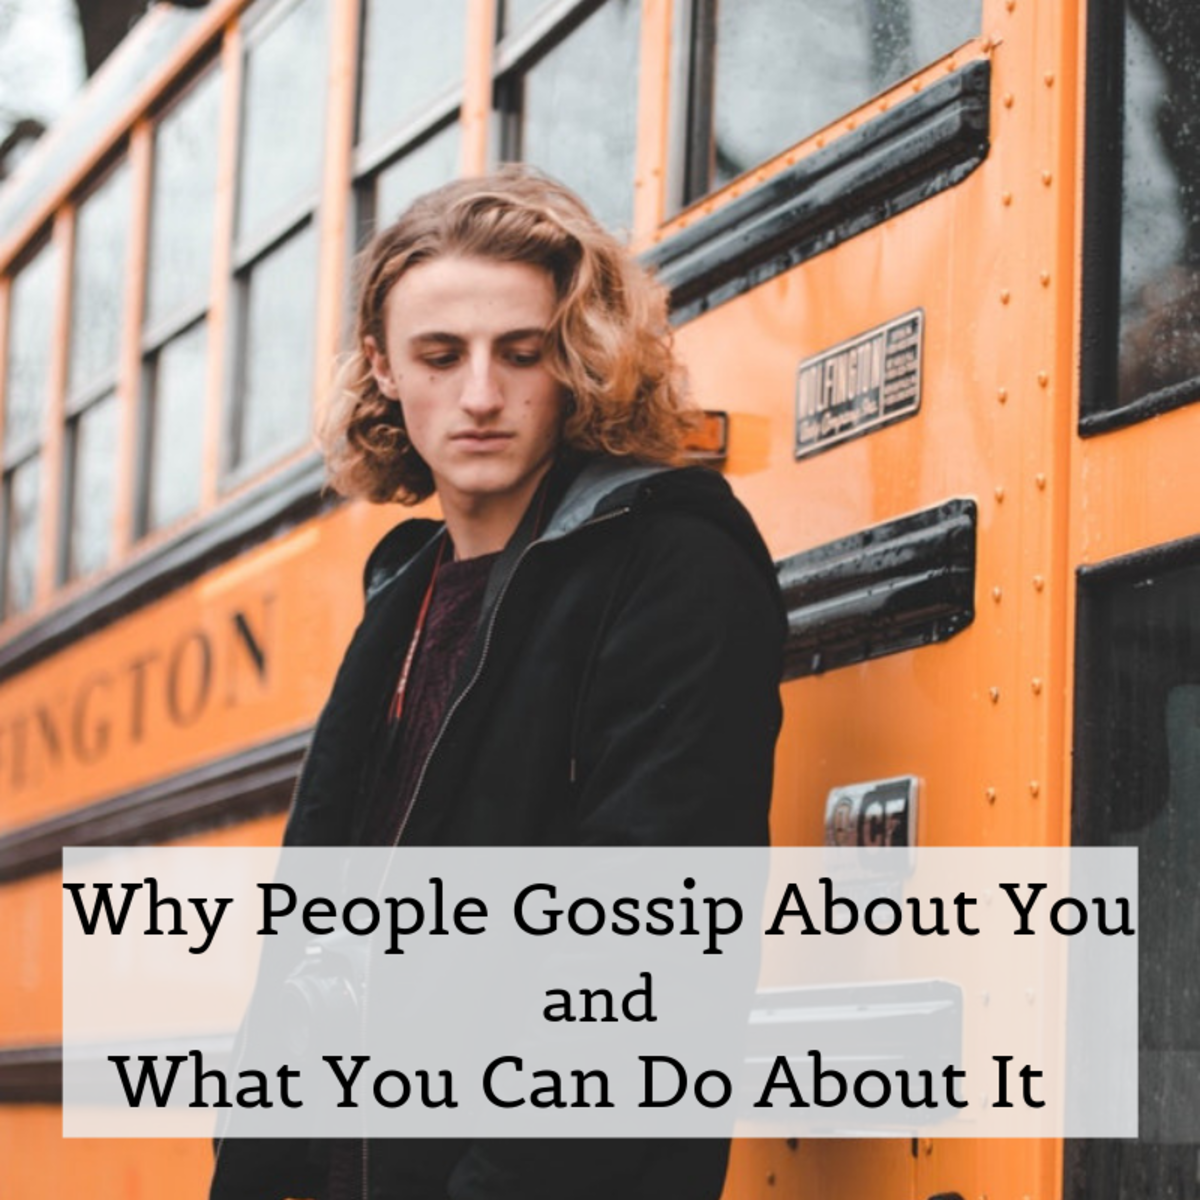 People will always gossip, but you can change the way you think about it when they do.